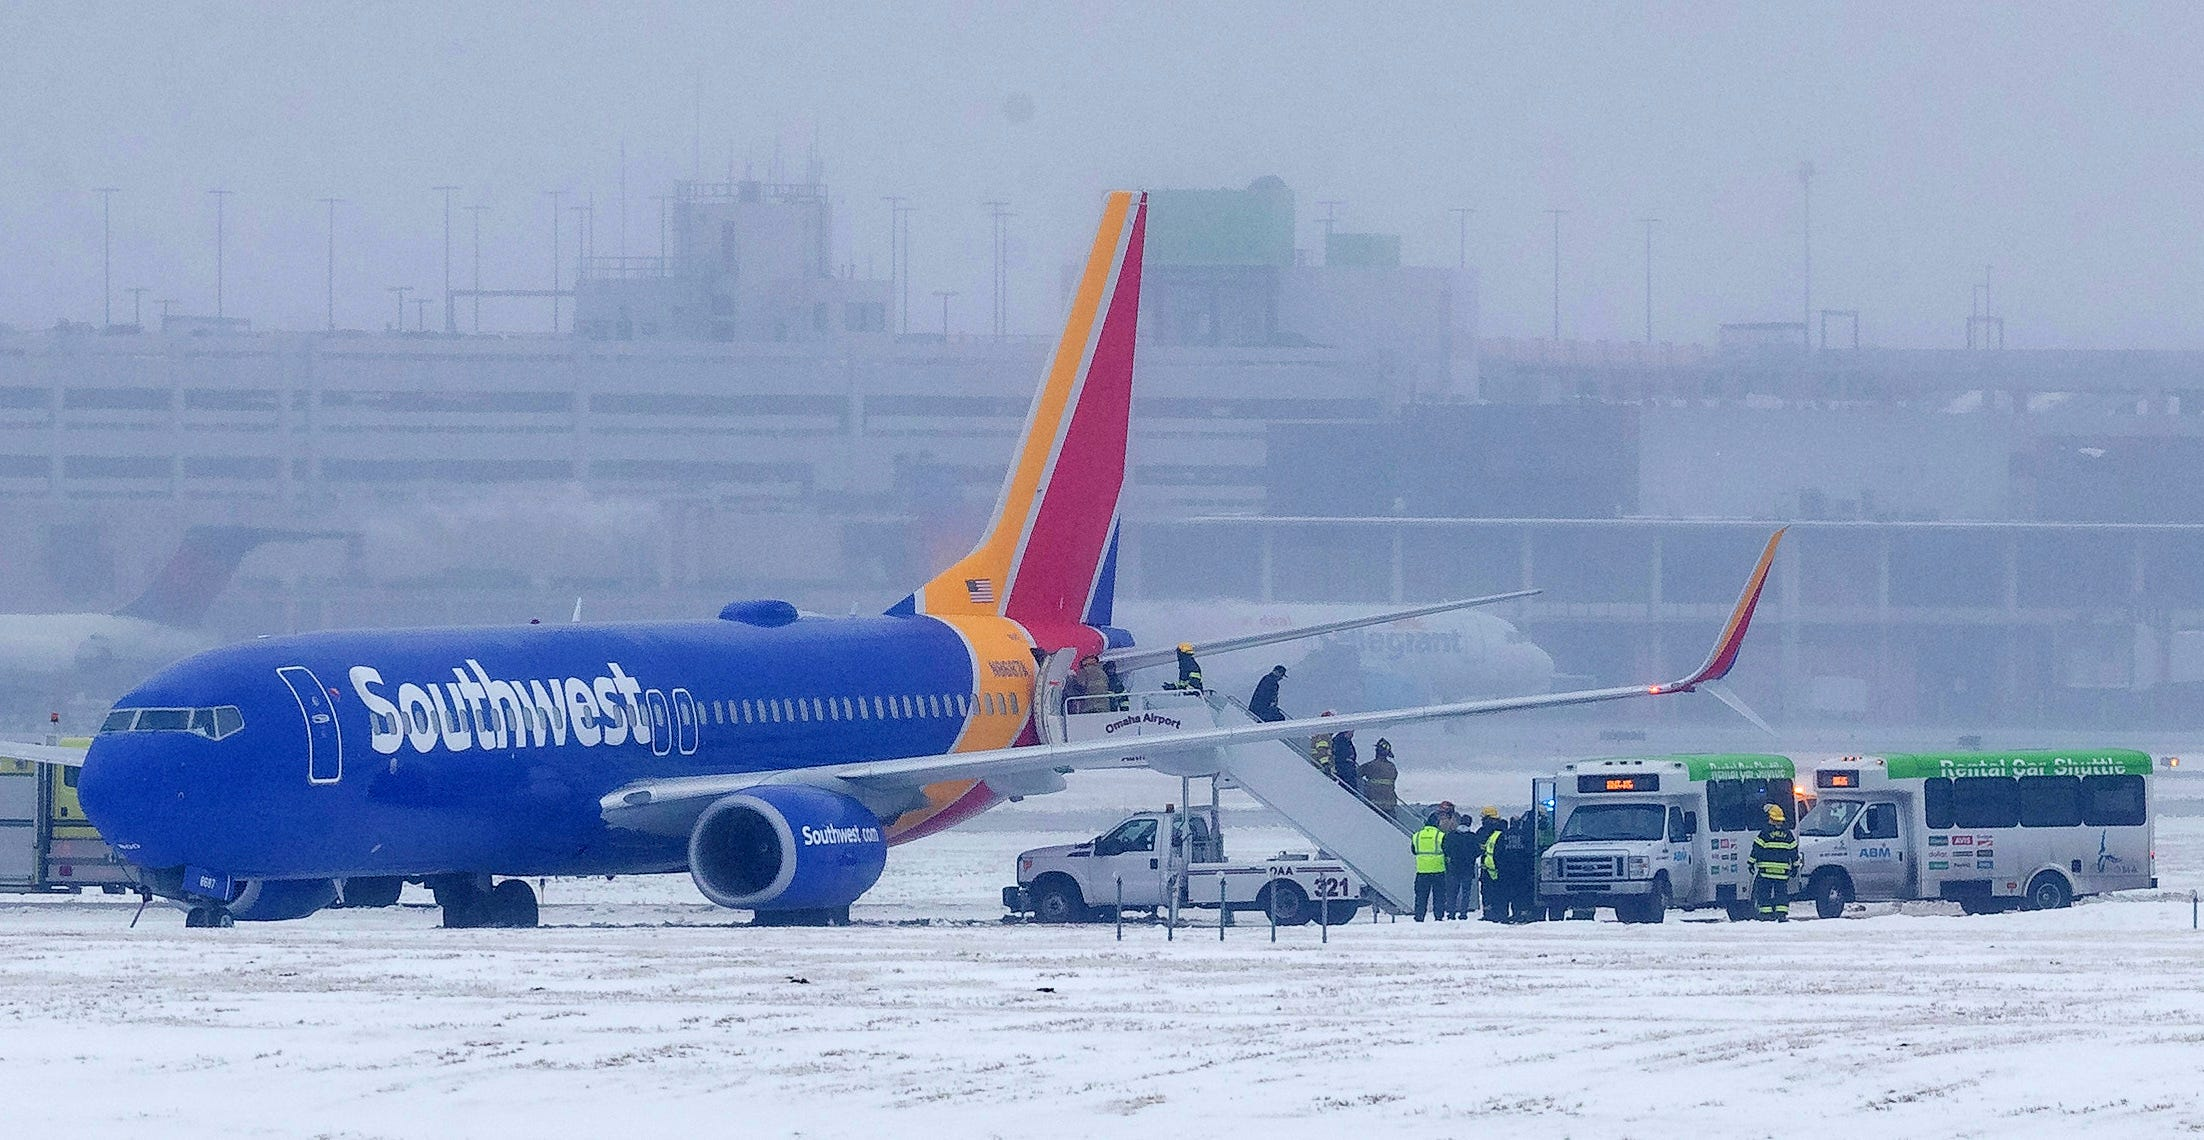 Ask the Captain: Why do planes have to dump fuel before making emergency landings?